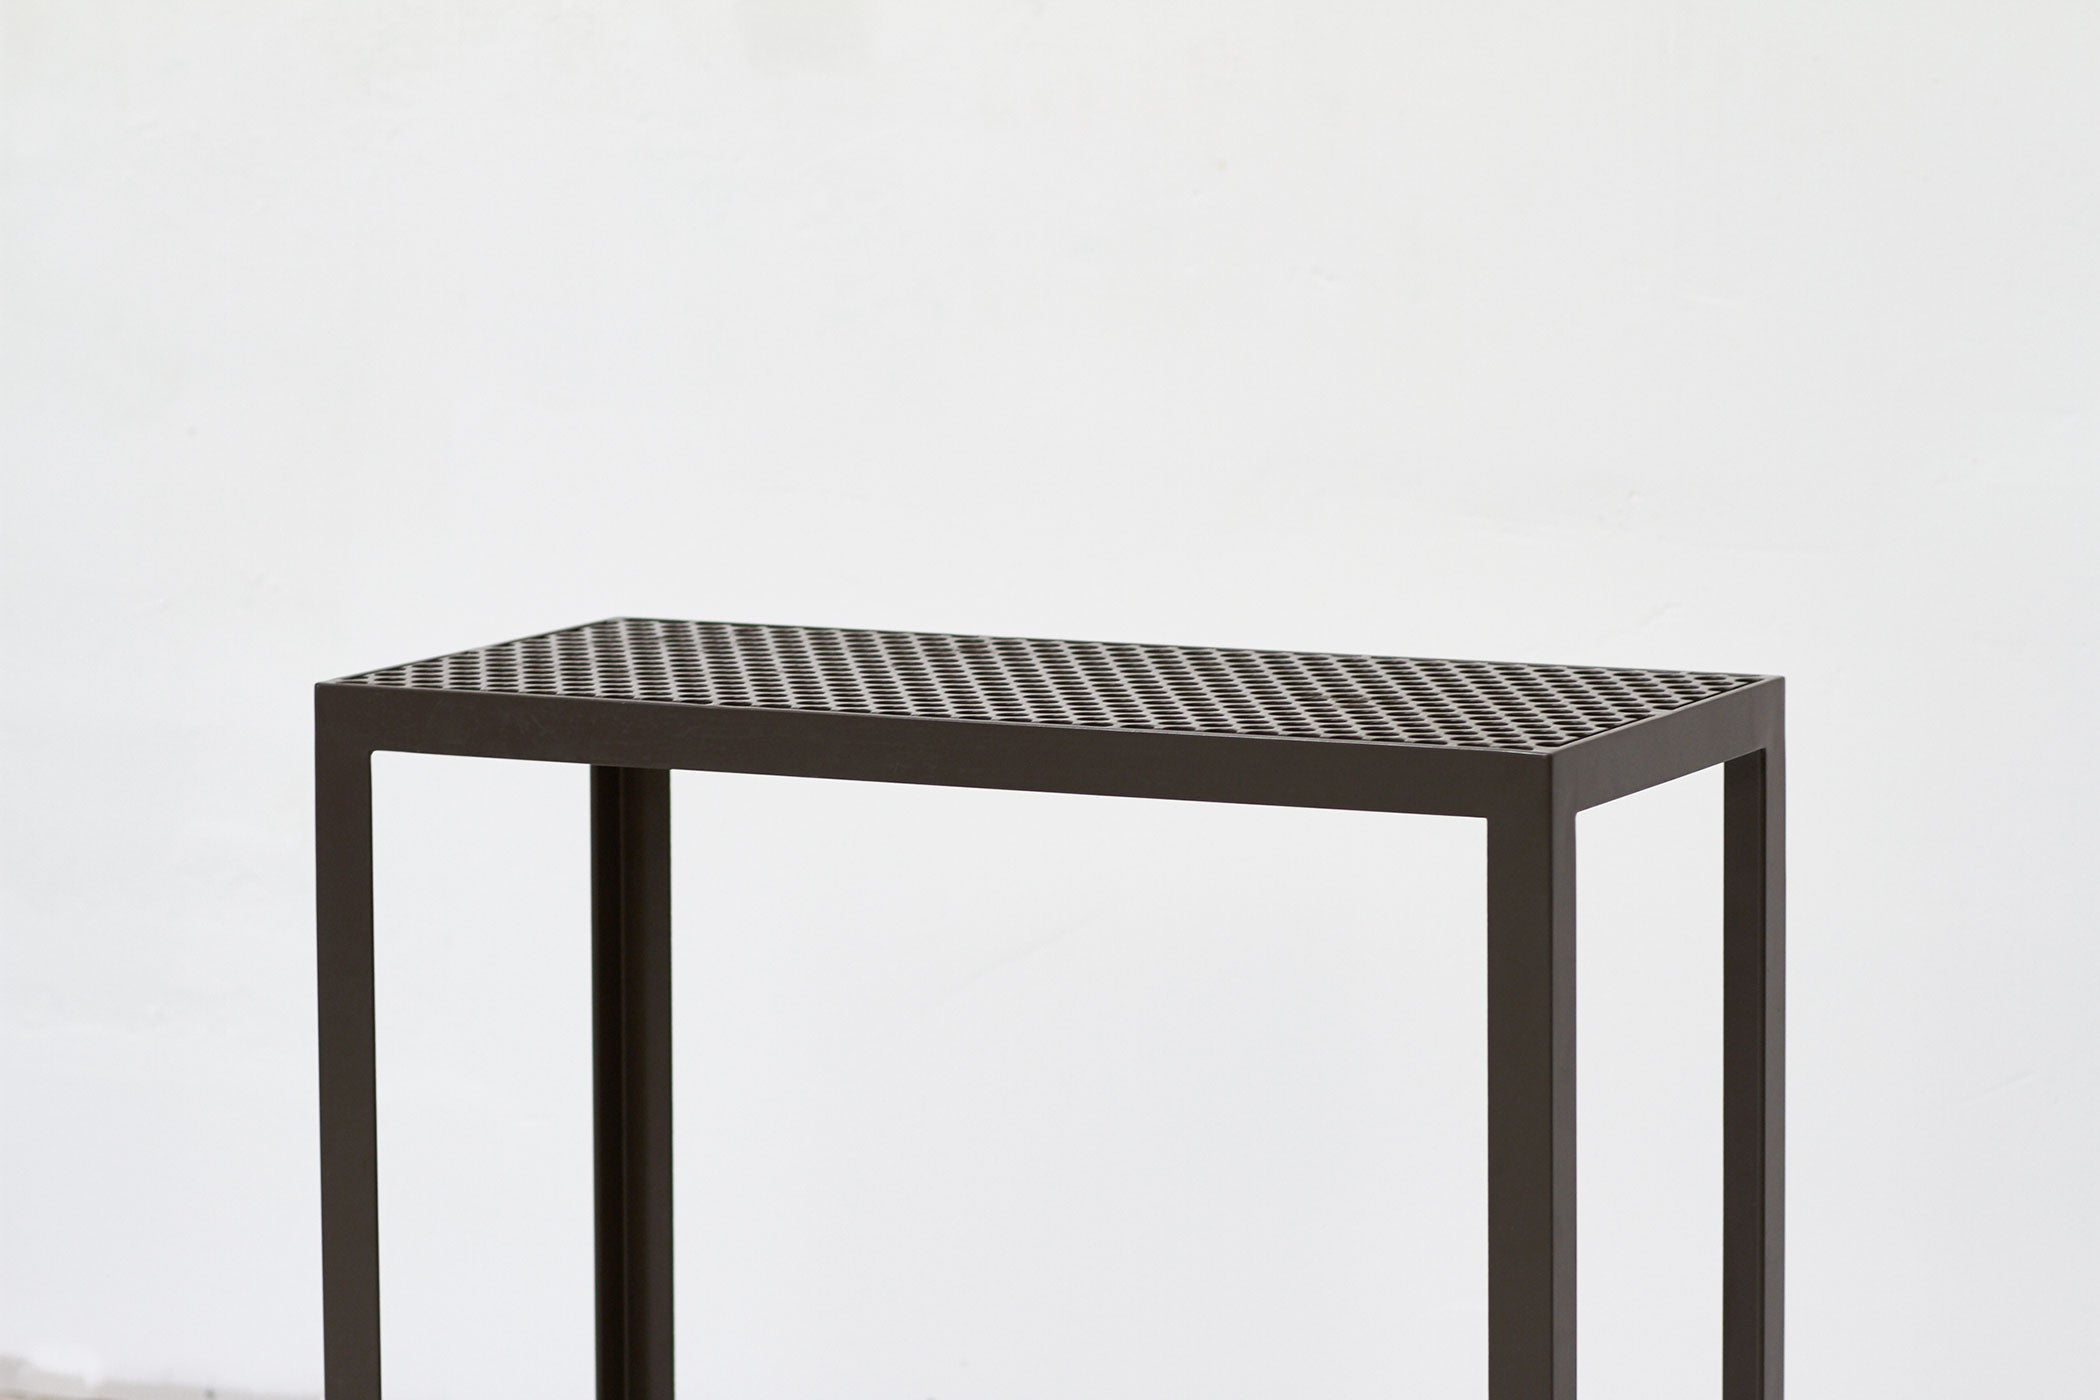 RAD Furniture's Perforated Entry Table - cropped